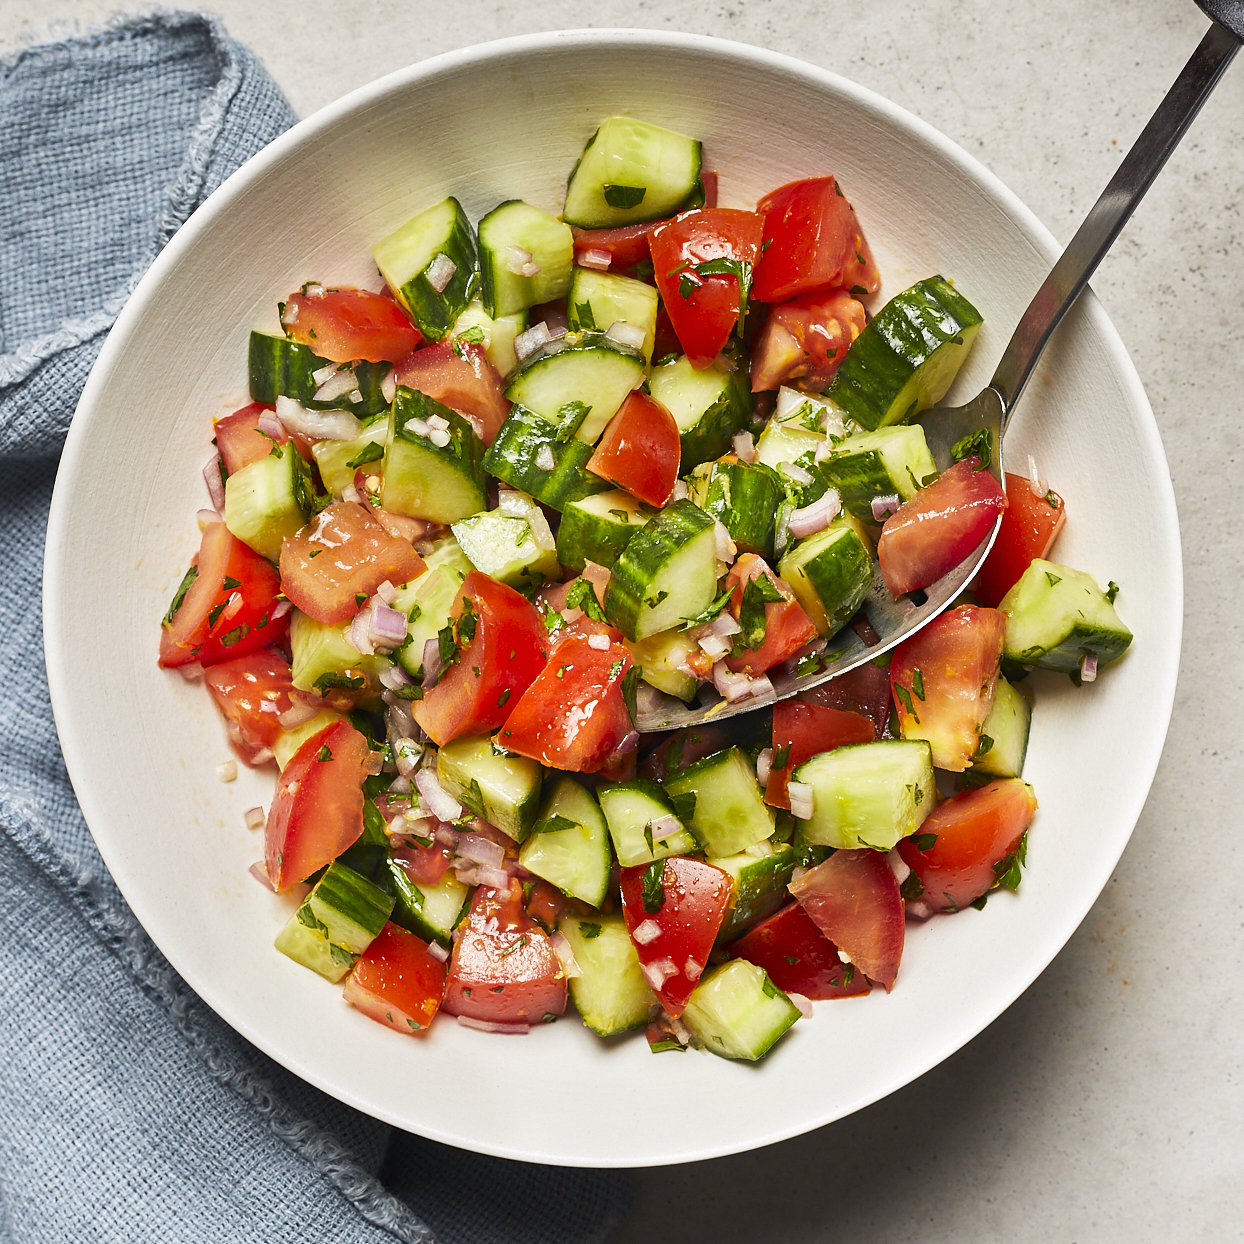 Chopped Cucumber & Tomato Salad with Lemon Trusted Brands